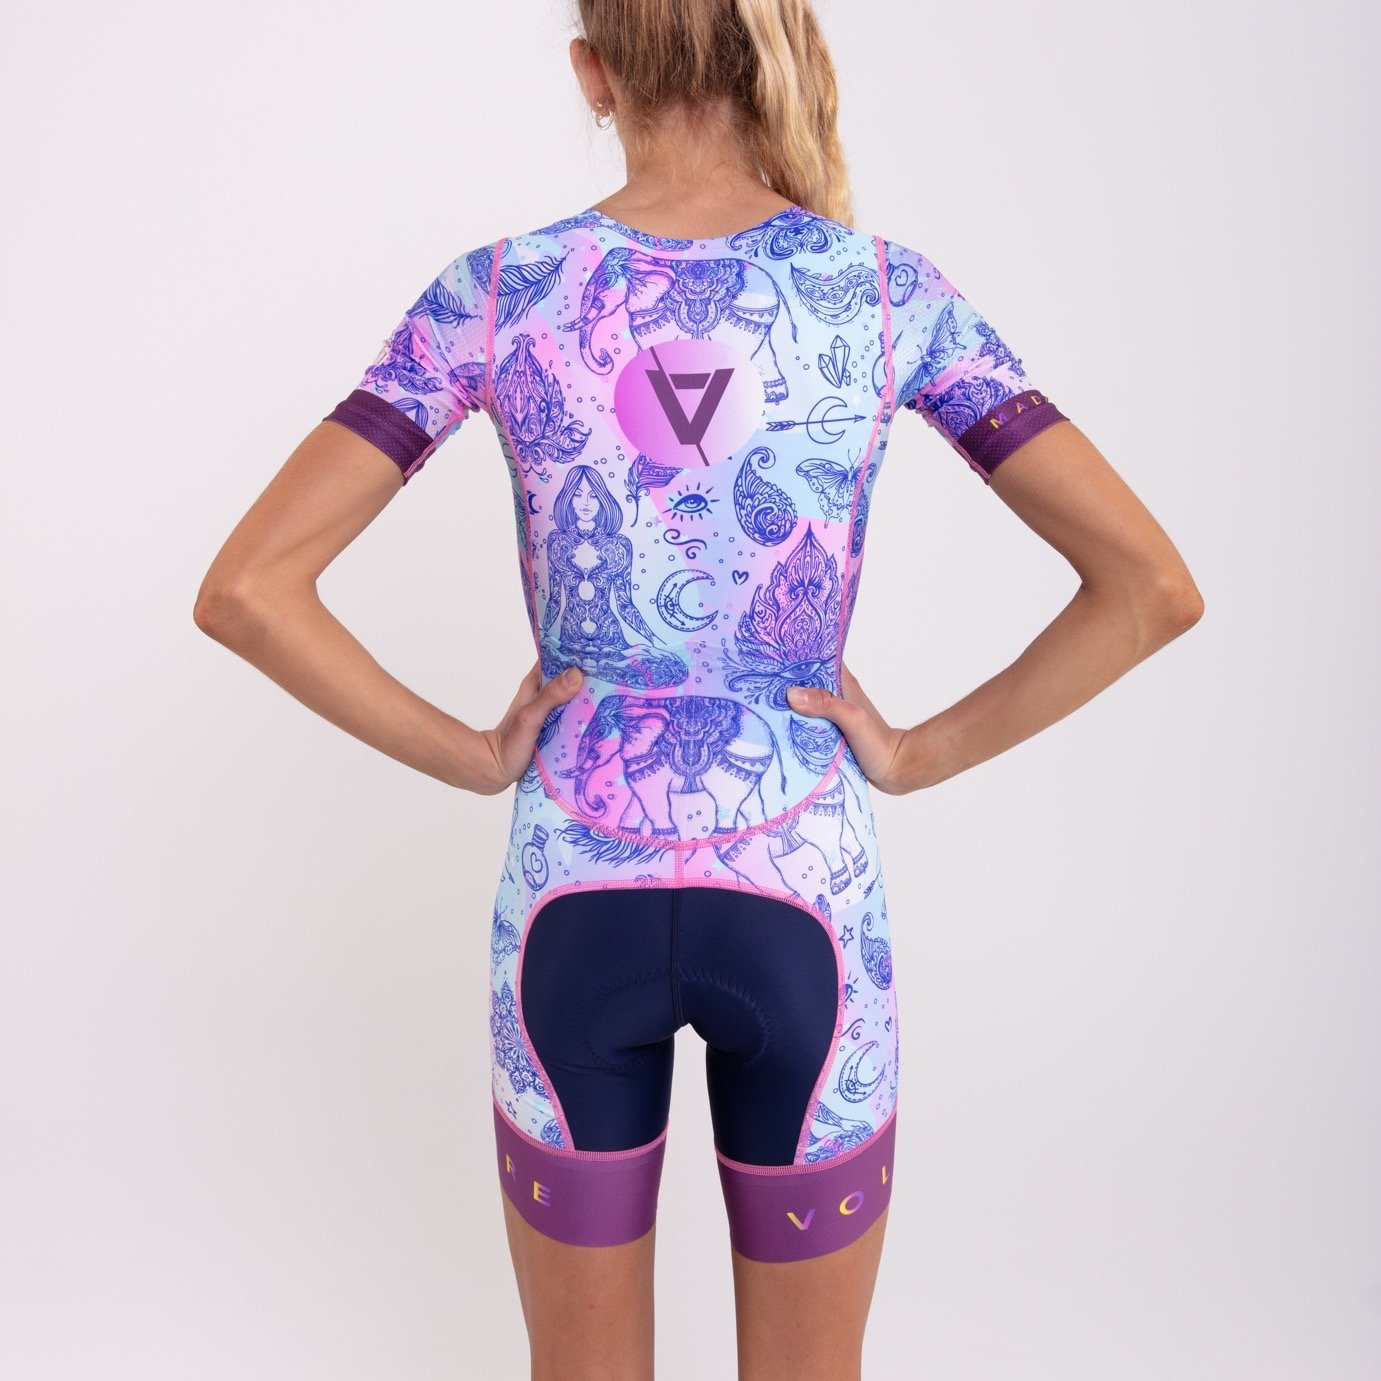 Volare Womens Hippie Sleeved Tri Suit